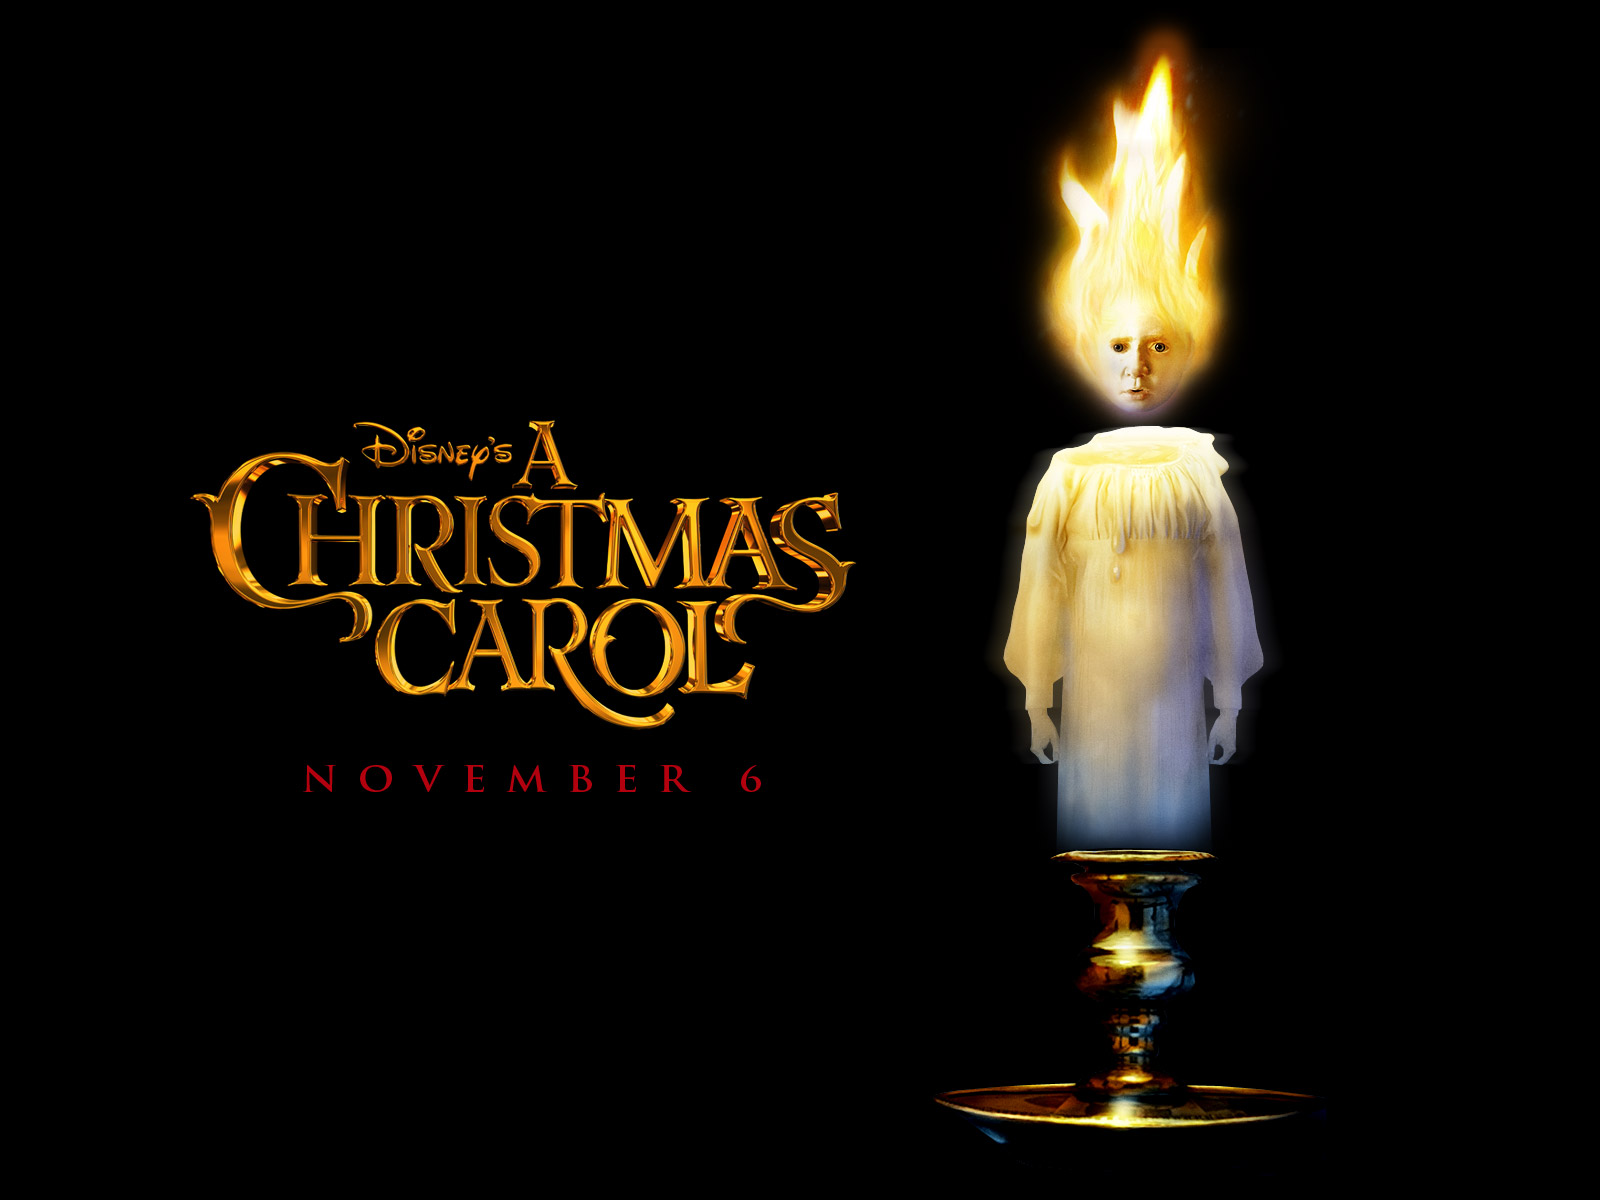 disneys a christmas carol 2009 all throughout his career from cast away to the polar express robert zemeckis never ceases to amaze me - Disneys A Christmas Carol Cast